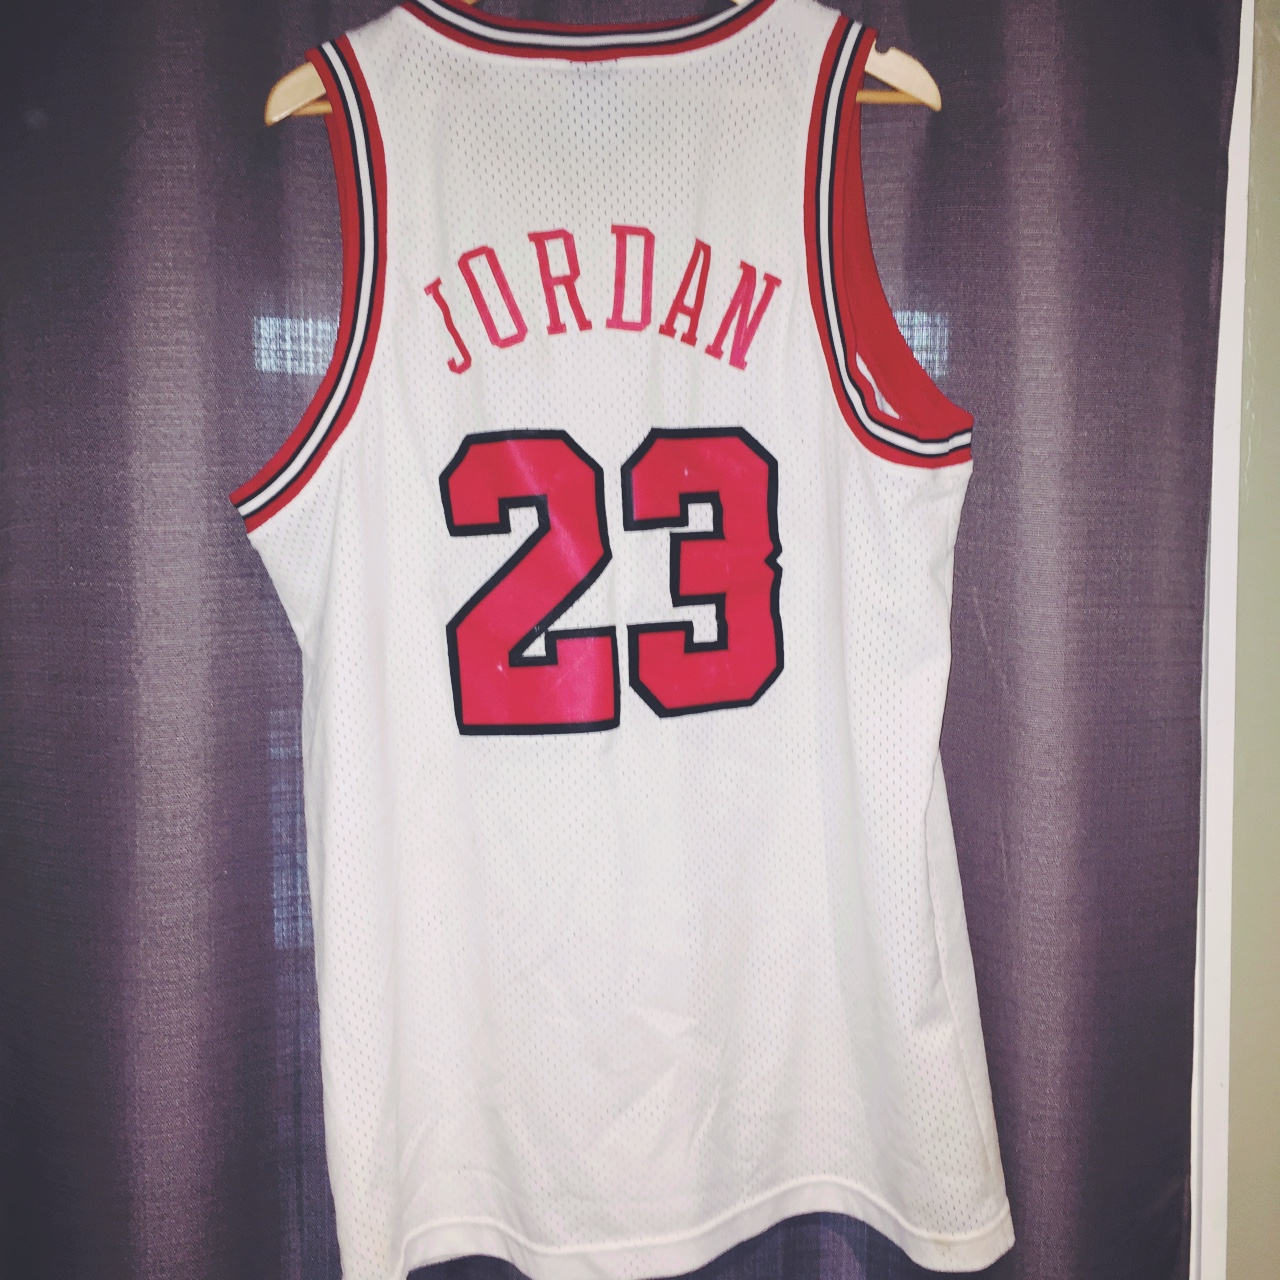 wholesale dealer ffebe ba9b4 Nike Team Flight 8403 Jordan jersey - Depop